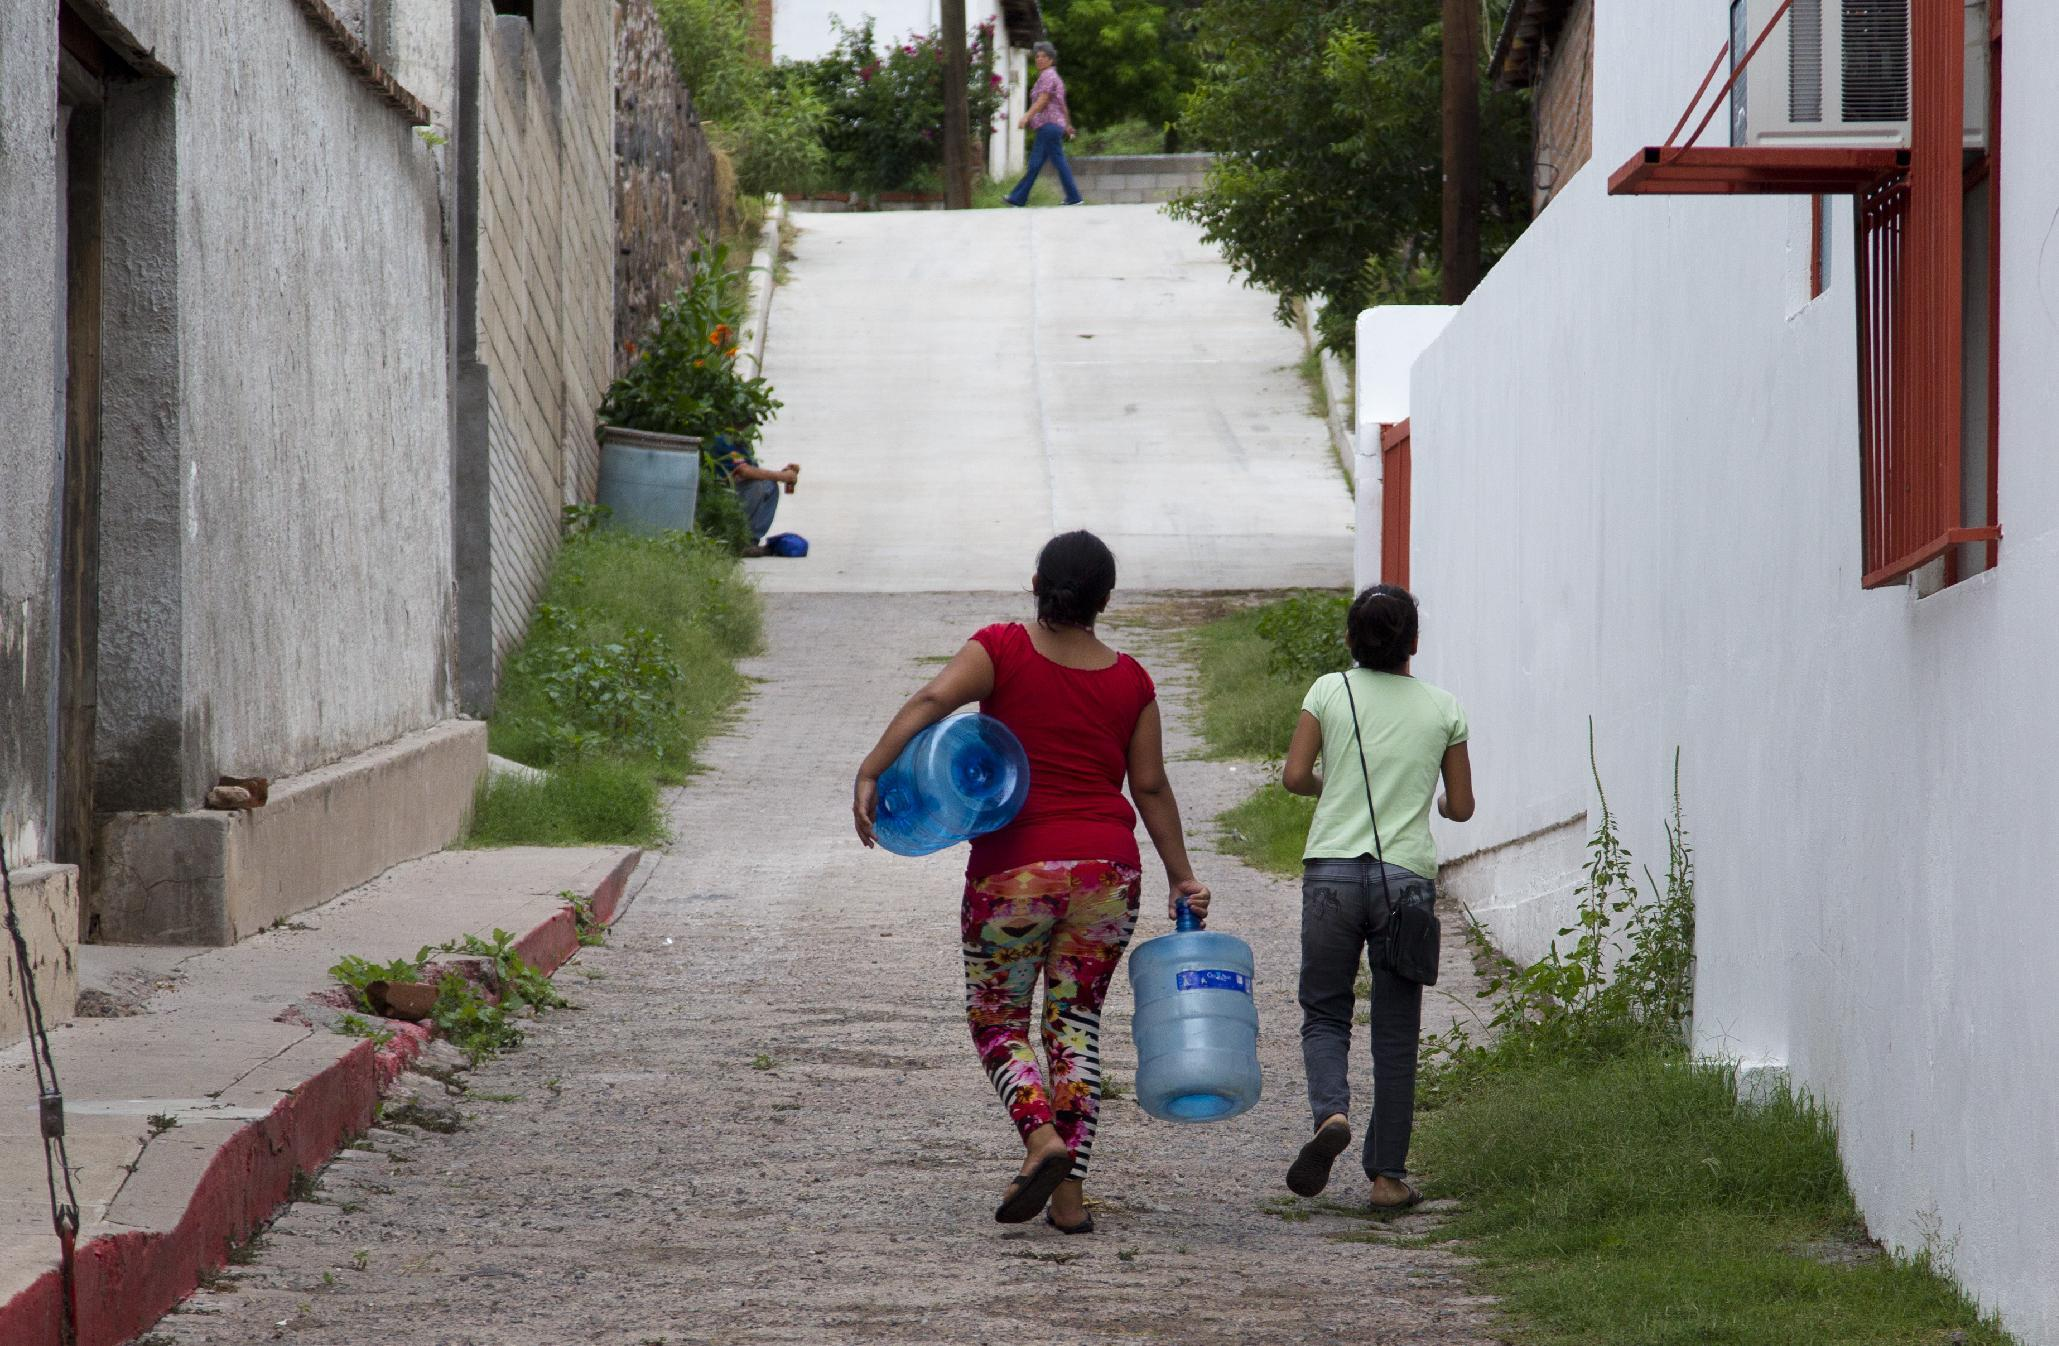 Residents go to collect drinking water in the Arizpe community, Sonora state of Mexico, on August 12, 2014 (AFP Photo/Hector Guerrero)